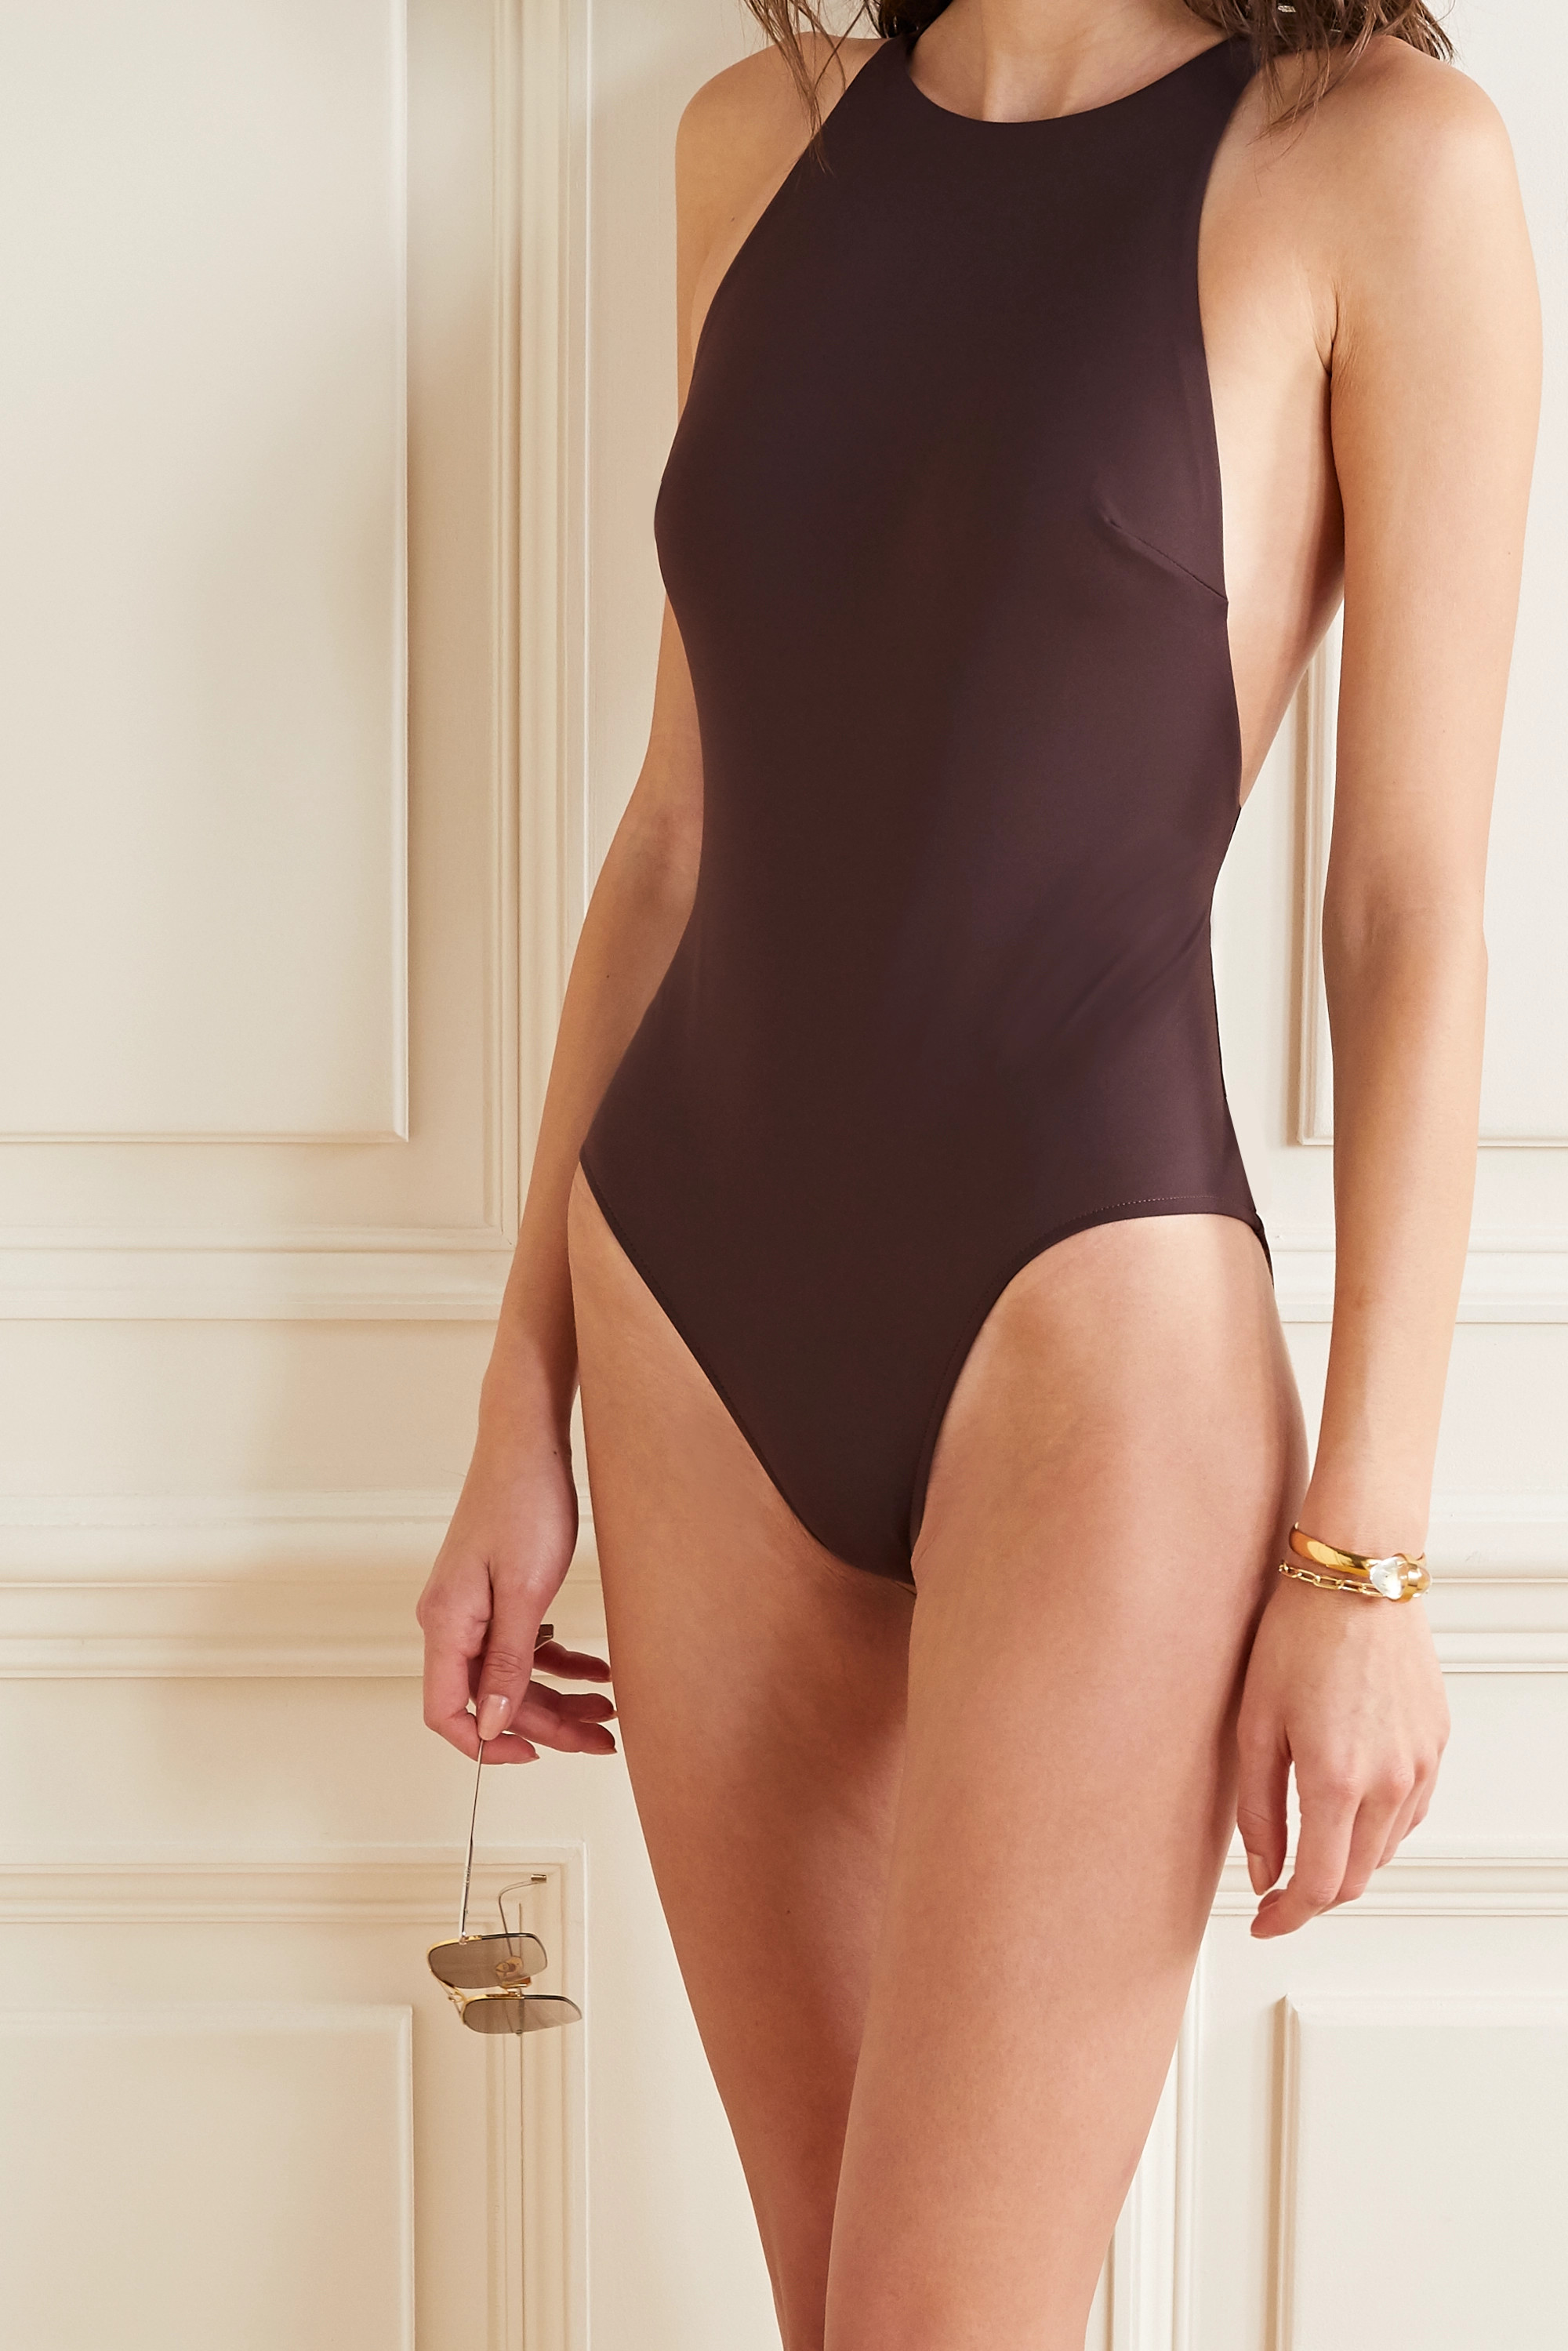 BONDI BORN + NET SUSTAIN Anais open-back swimsuit